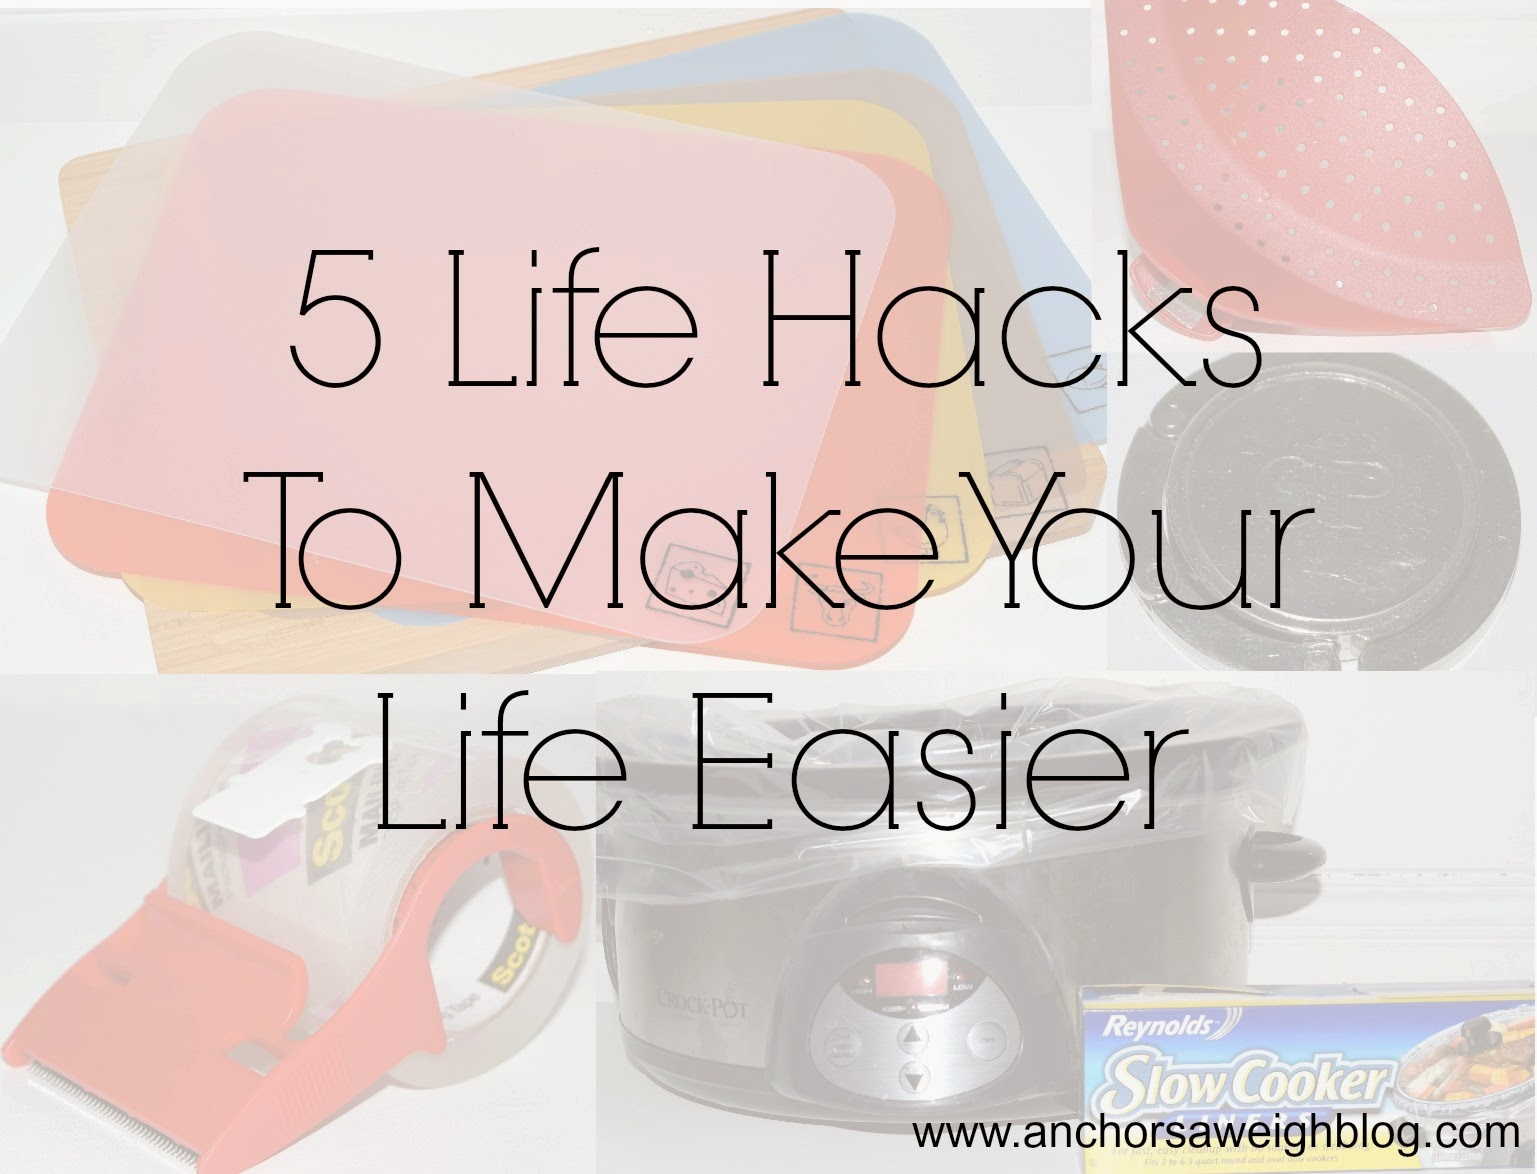 5 Life Hacks To Make Your Life Easier | Anchors Aweigh